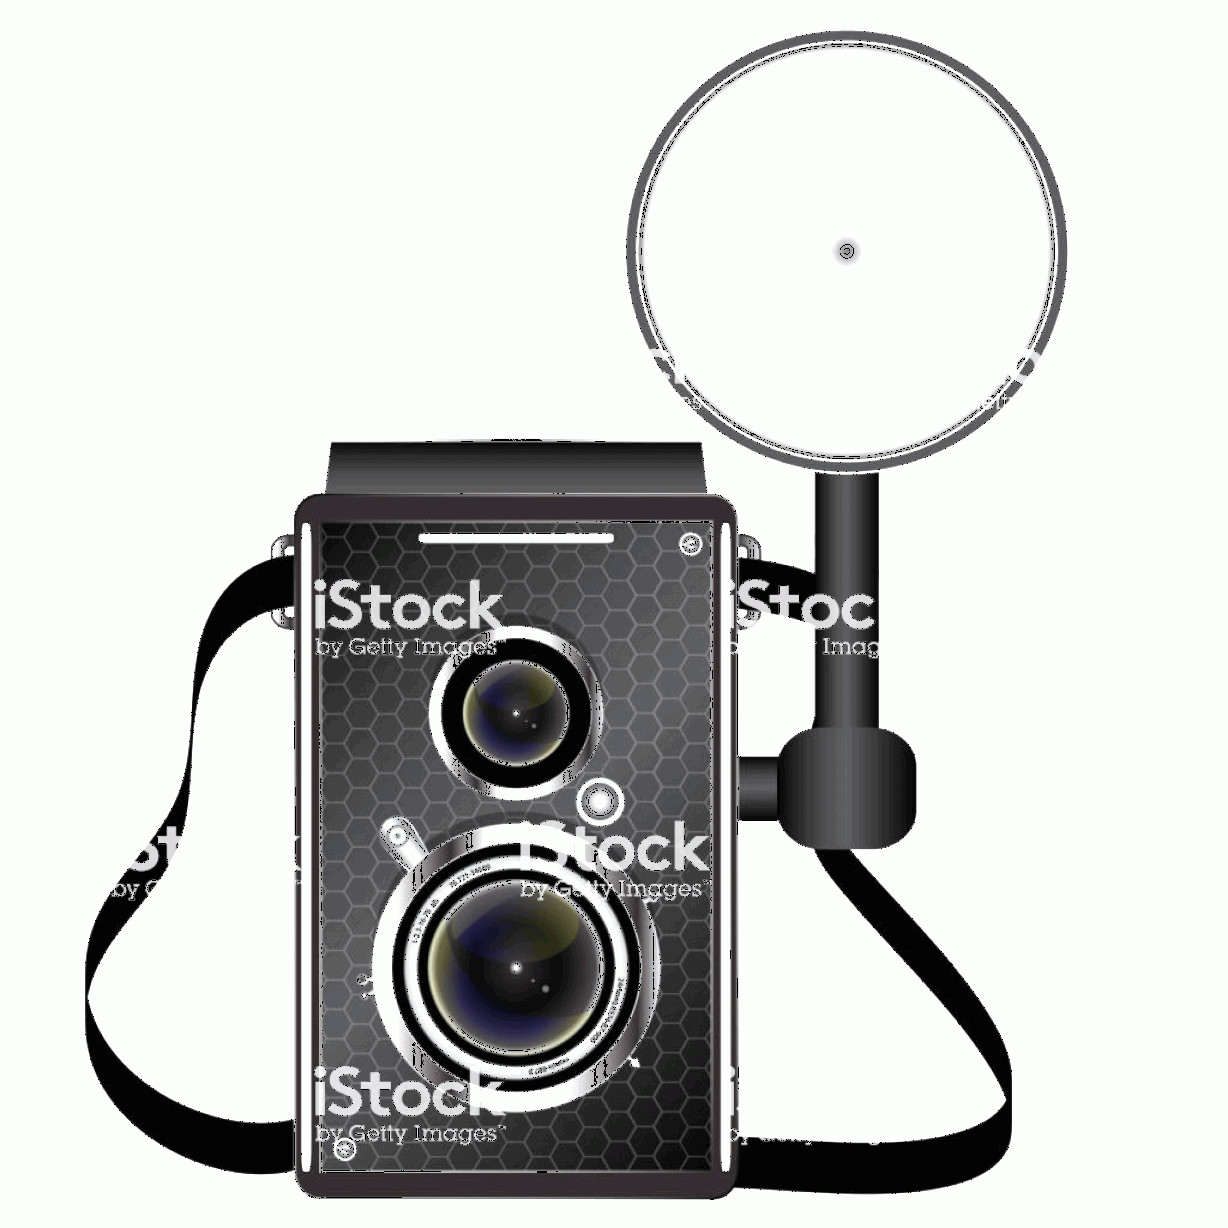 Classic Camera Vector: Realistic Vintage Photo Camera Vector Illustration On A White Background Gm